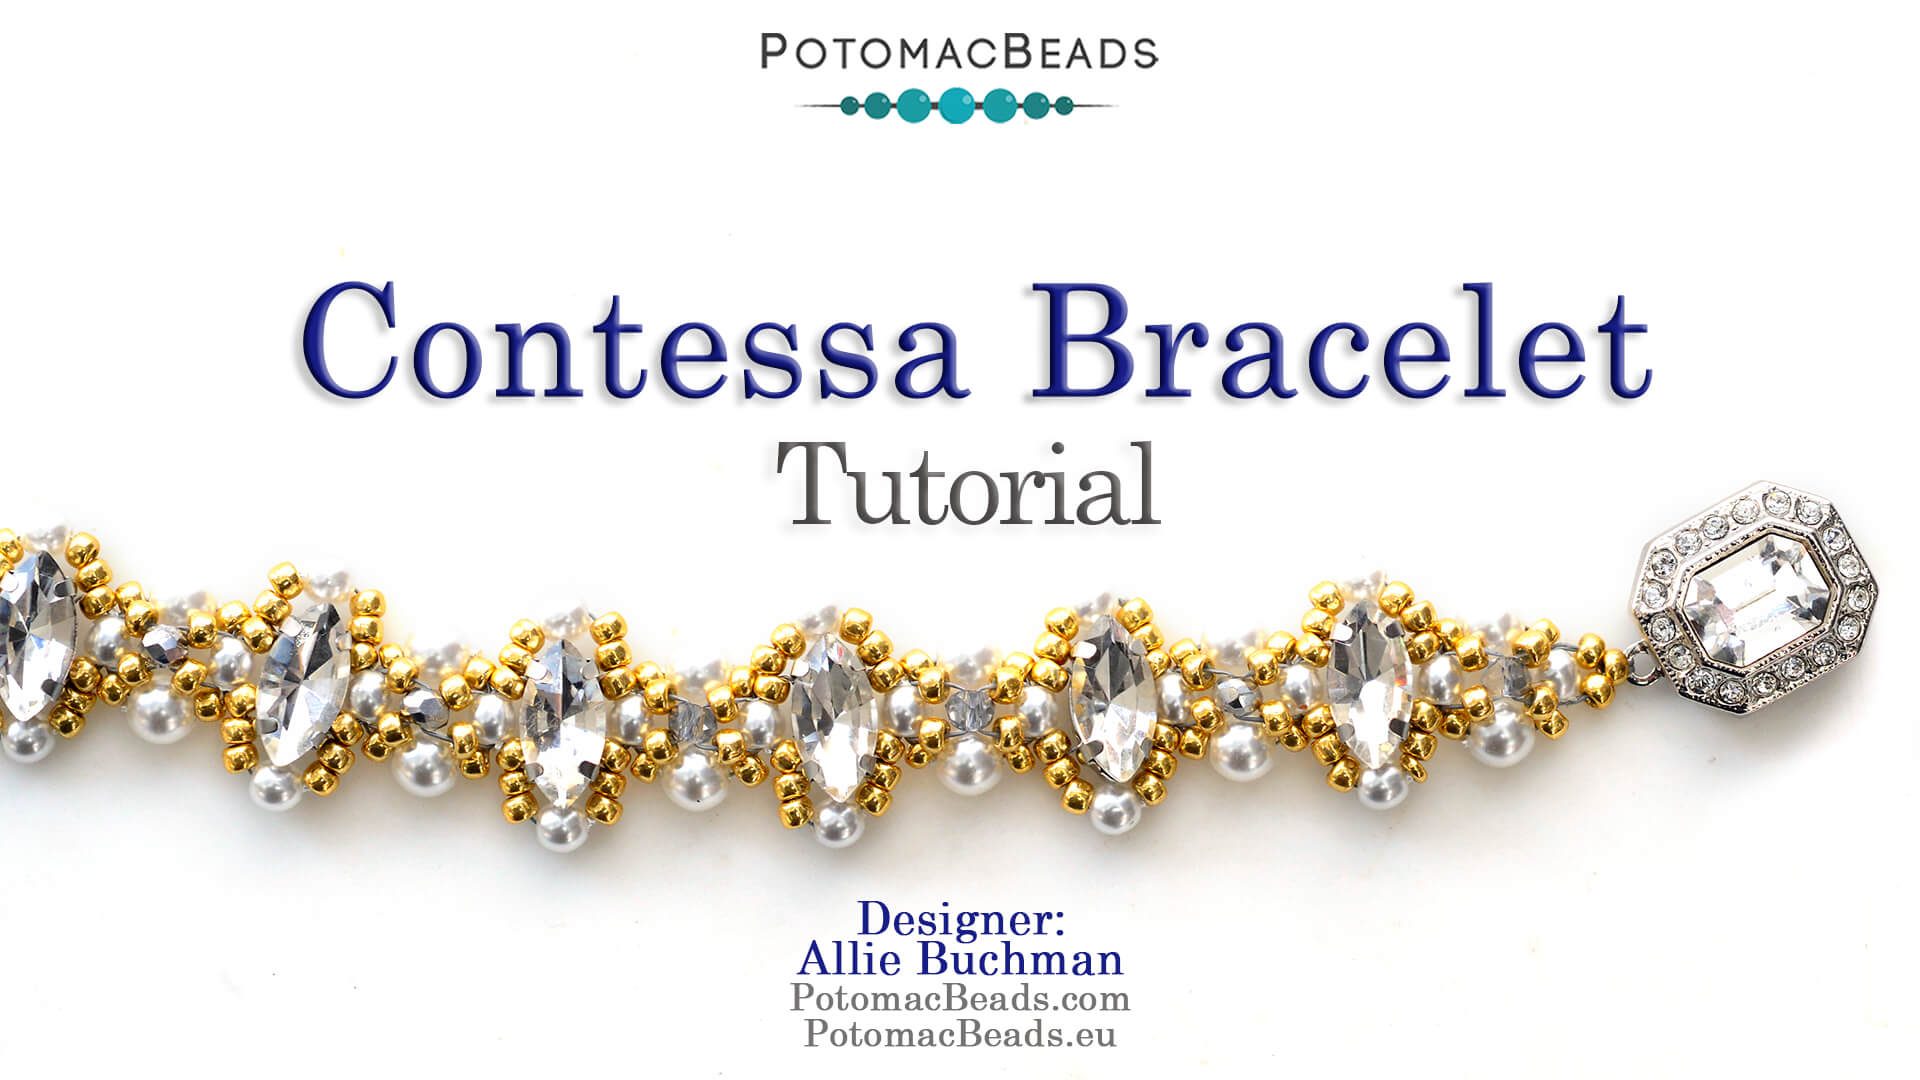 How to Bead Jewelry / Videos Sorted by Beads / Pearl Videos (Czech, Freshwater, Potomac Pearls) / Contessa Bracelet Tutorial